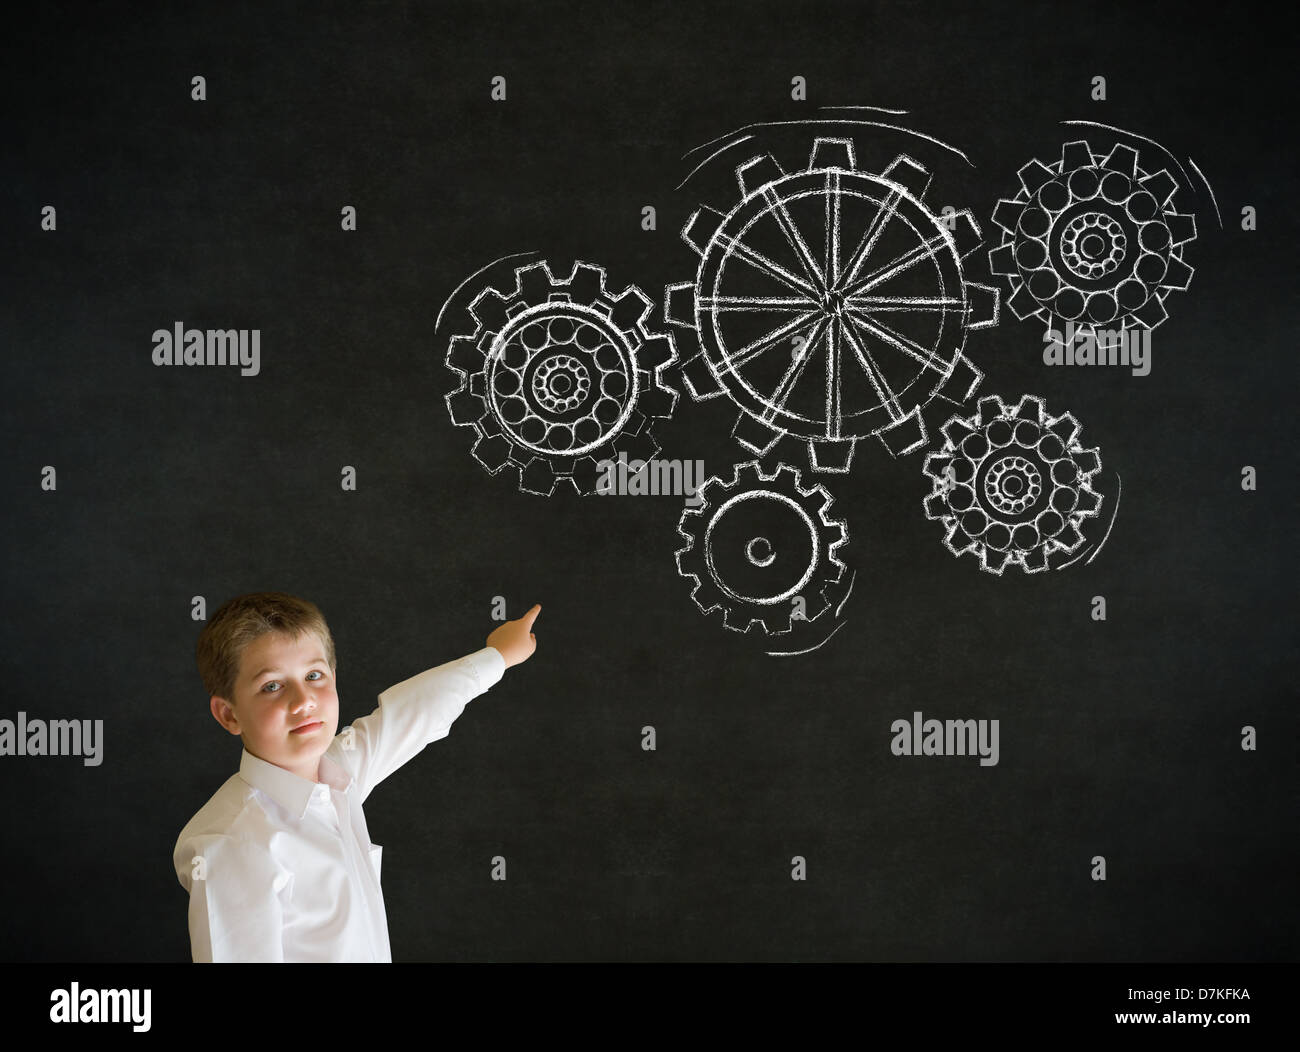 Pointing boy dressed up as business man with chalk turning gear cogs or gears on blackboard background - Stock Image